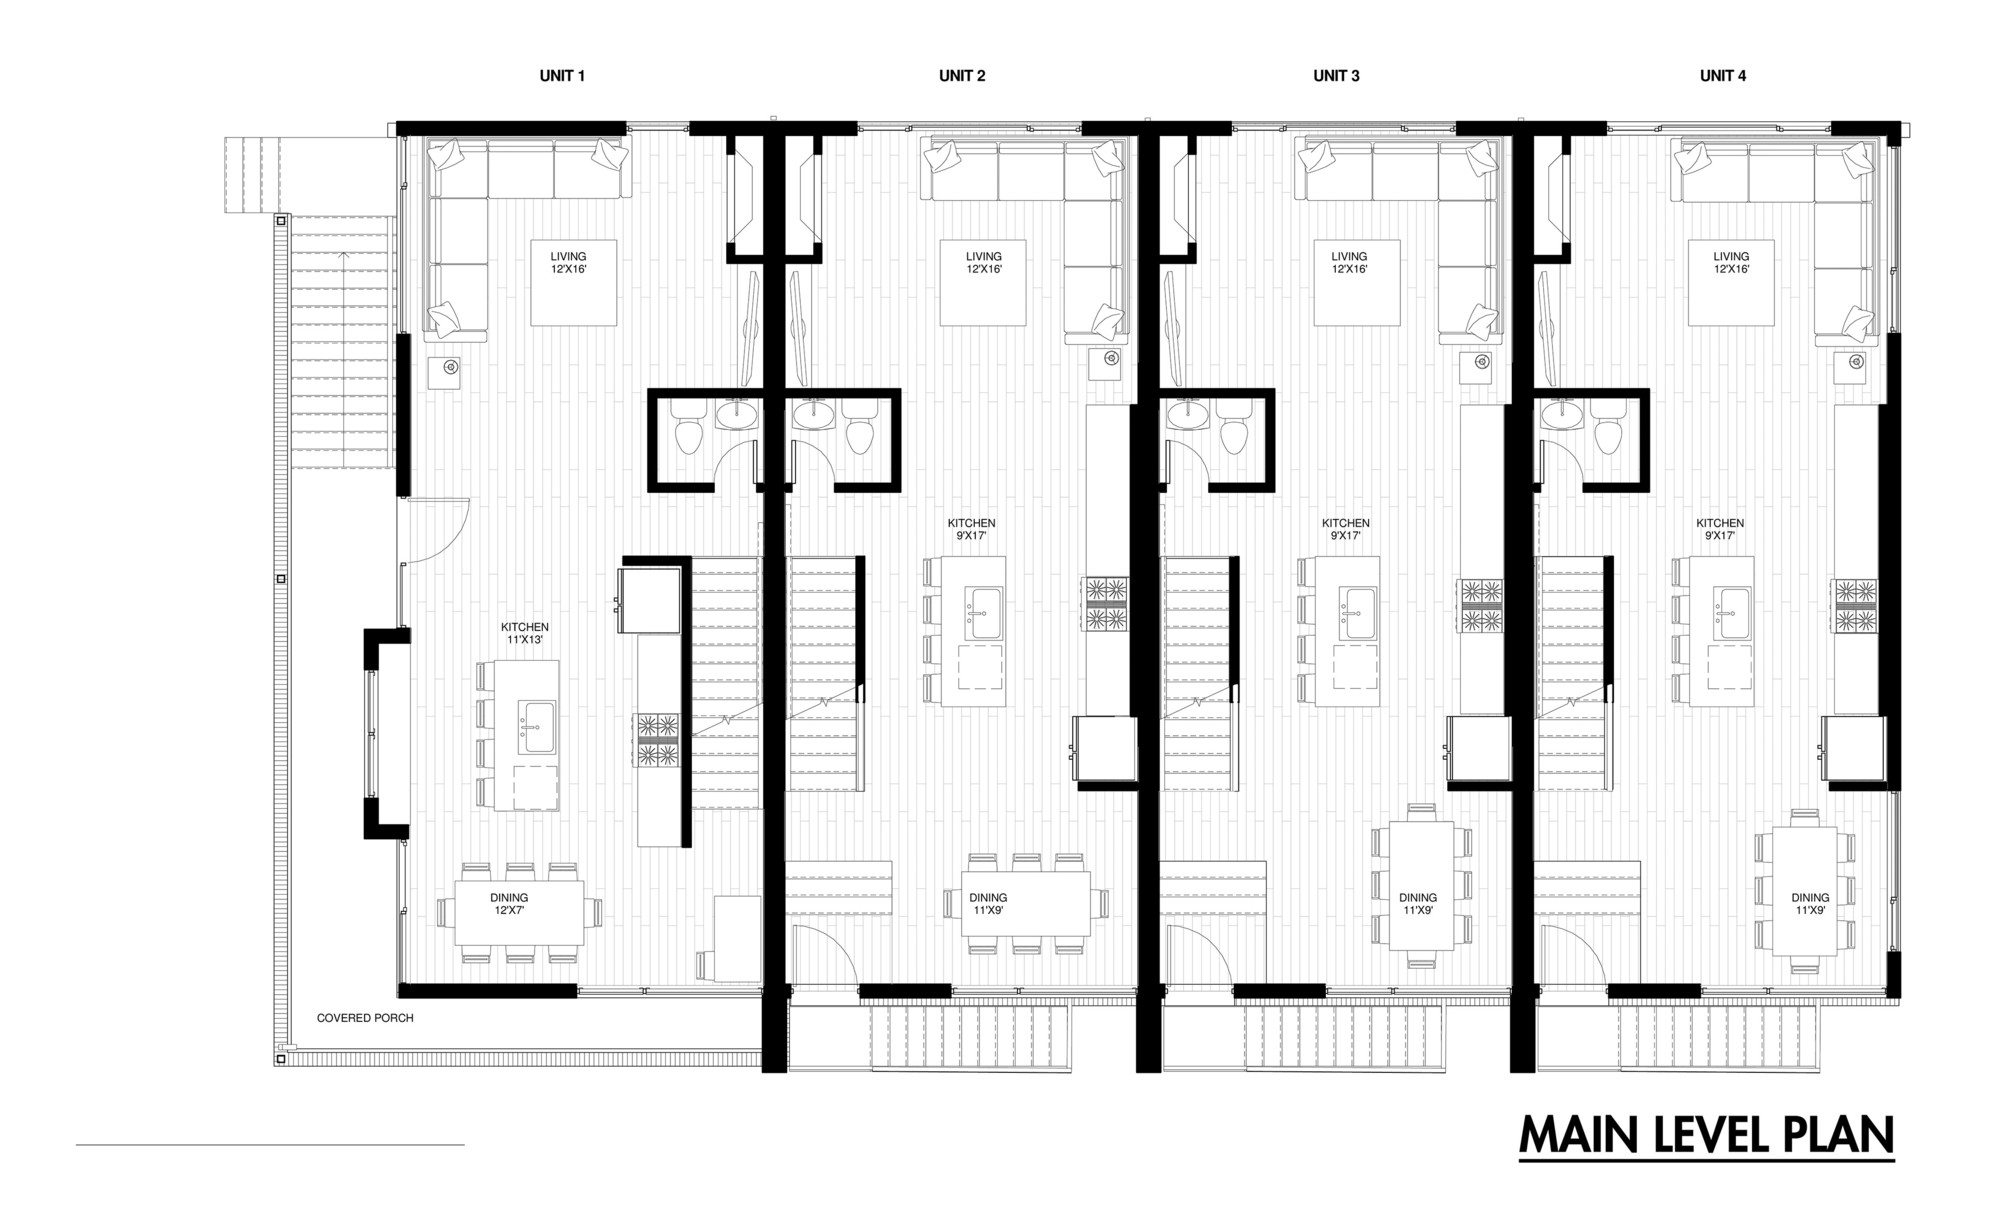 Row house plans row house plans town home plans six units for Row house layout plan